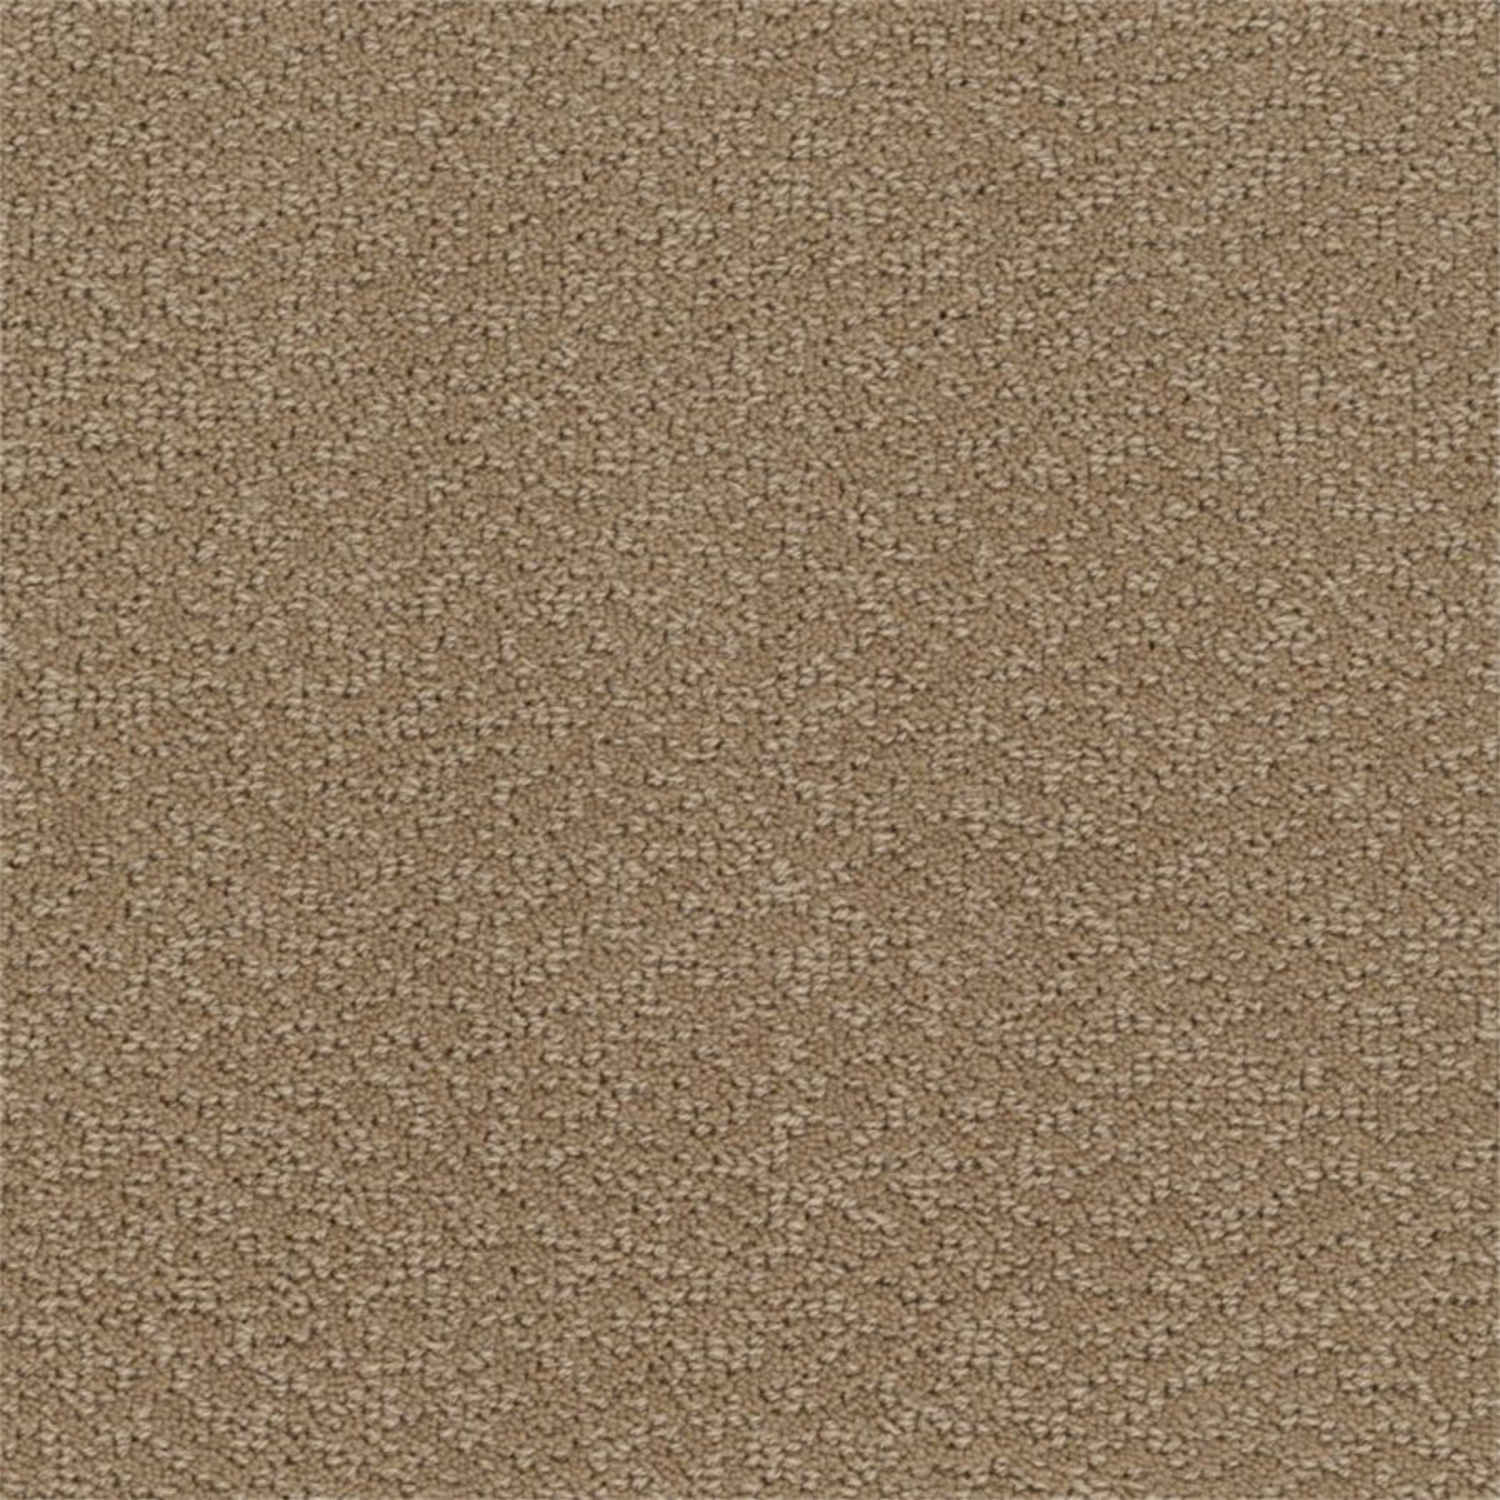 Karastan Carpet and Rug Silver Spring Rockville Laurel College Park     Karastan woven wool carpet style fifth avenue flair